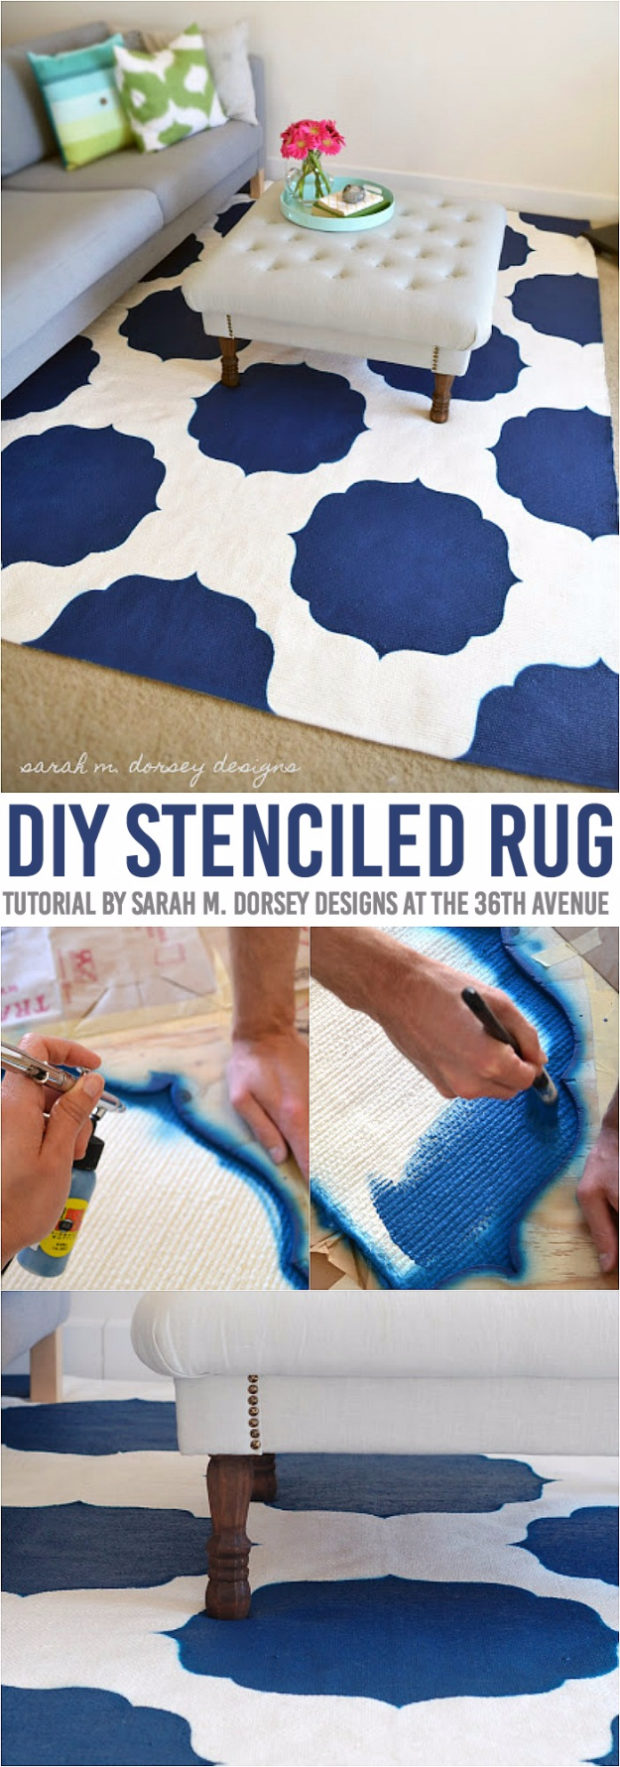 15 Chic DIY Rug Ideas You Can Make Right Away! (7)